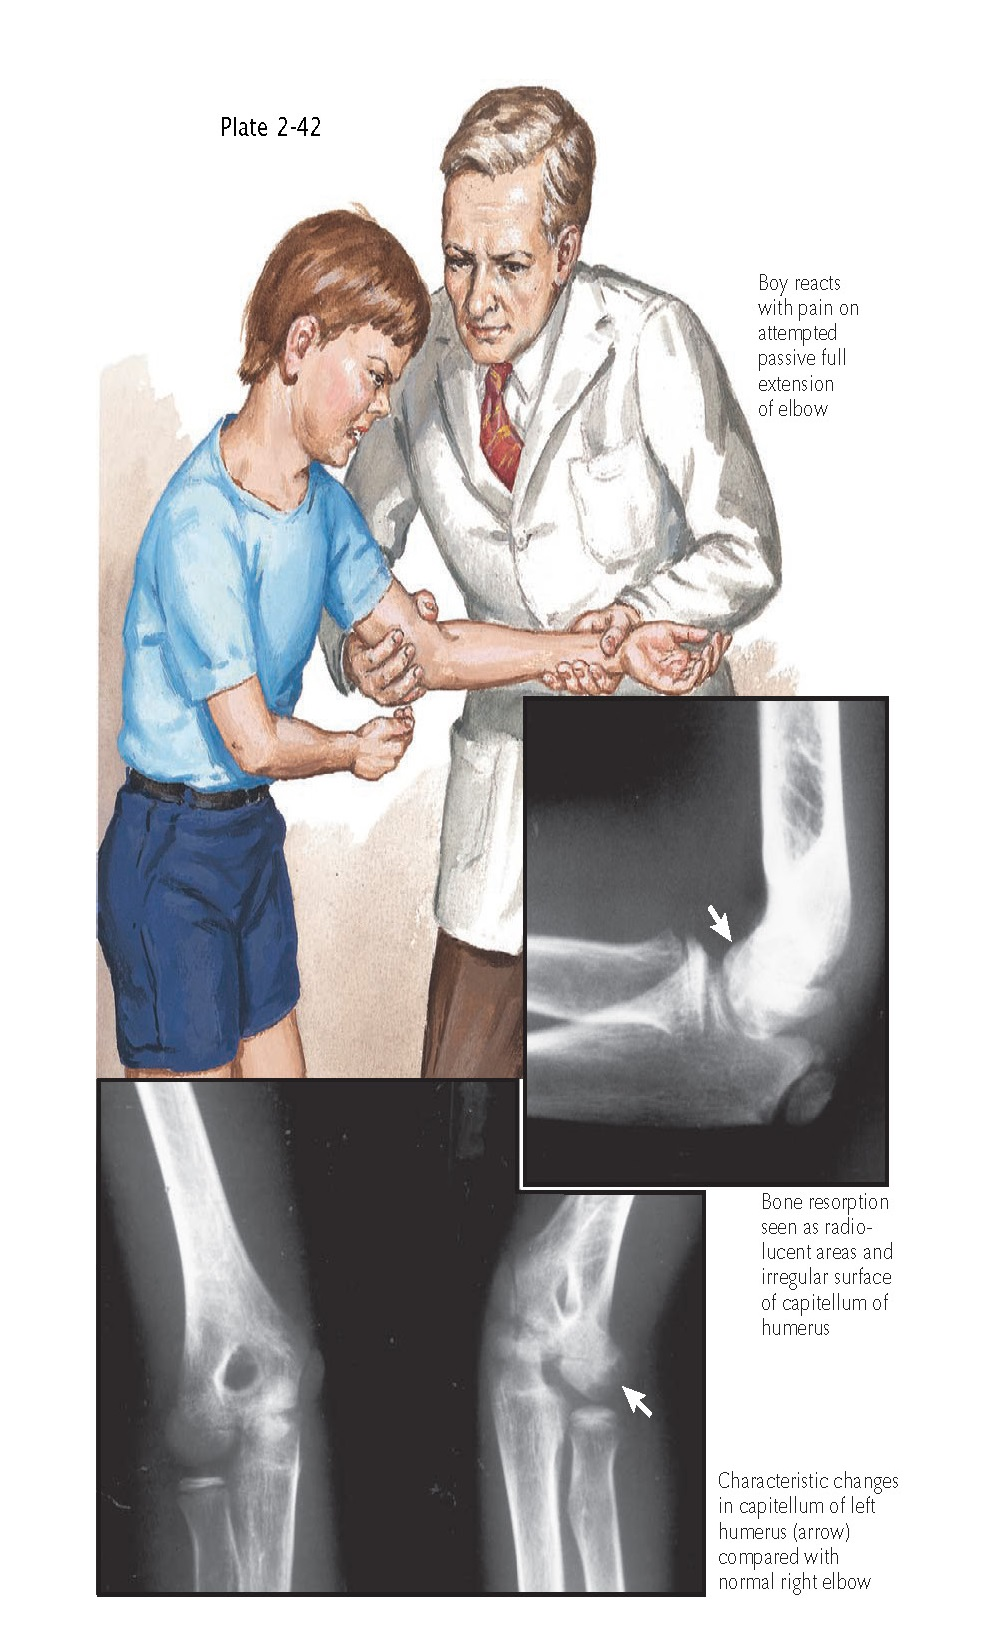 ROSIS OF THE ELBOW (PANNER DISEASE)